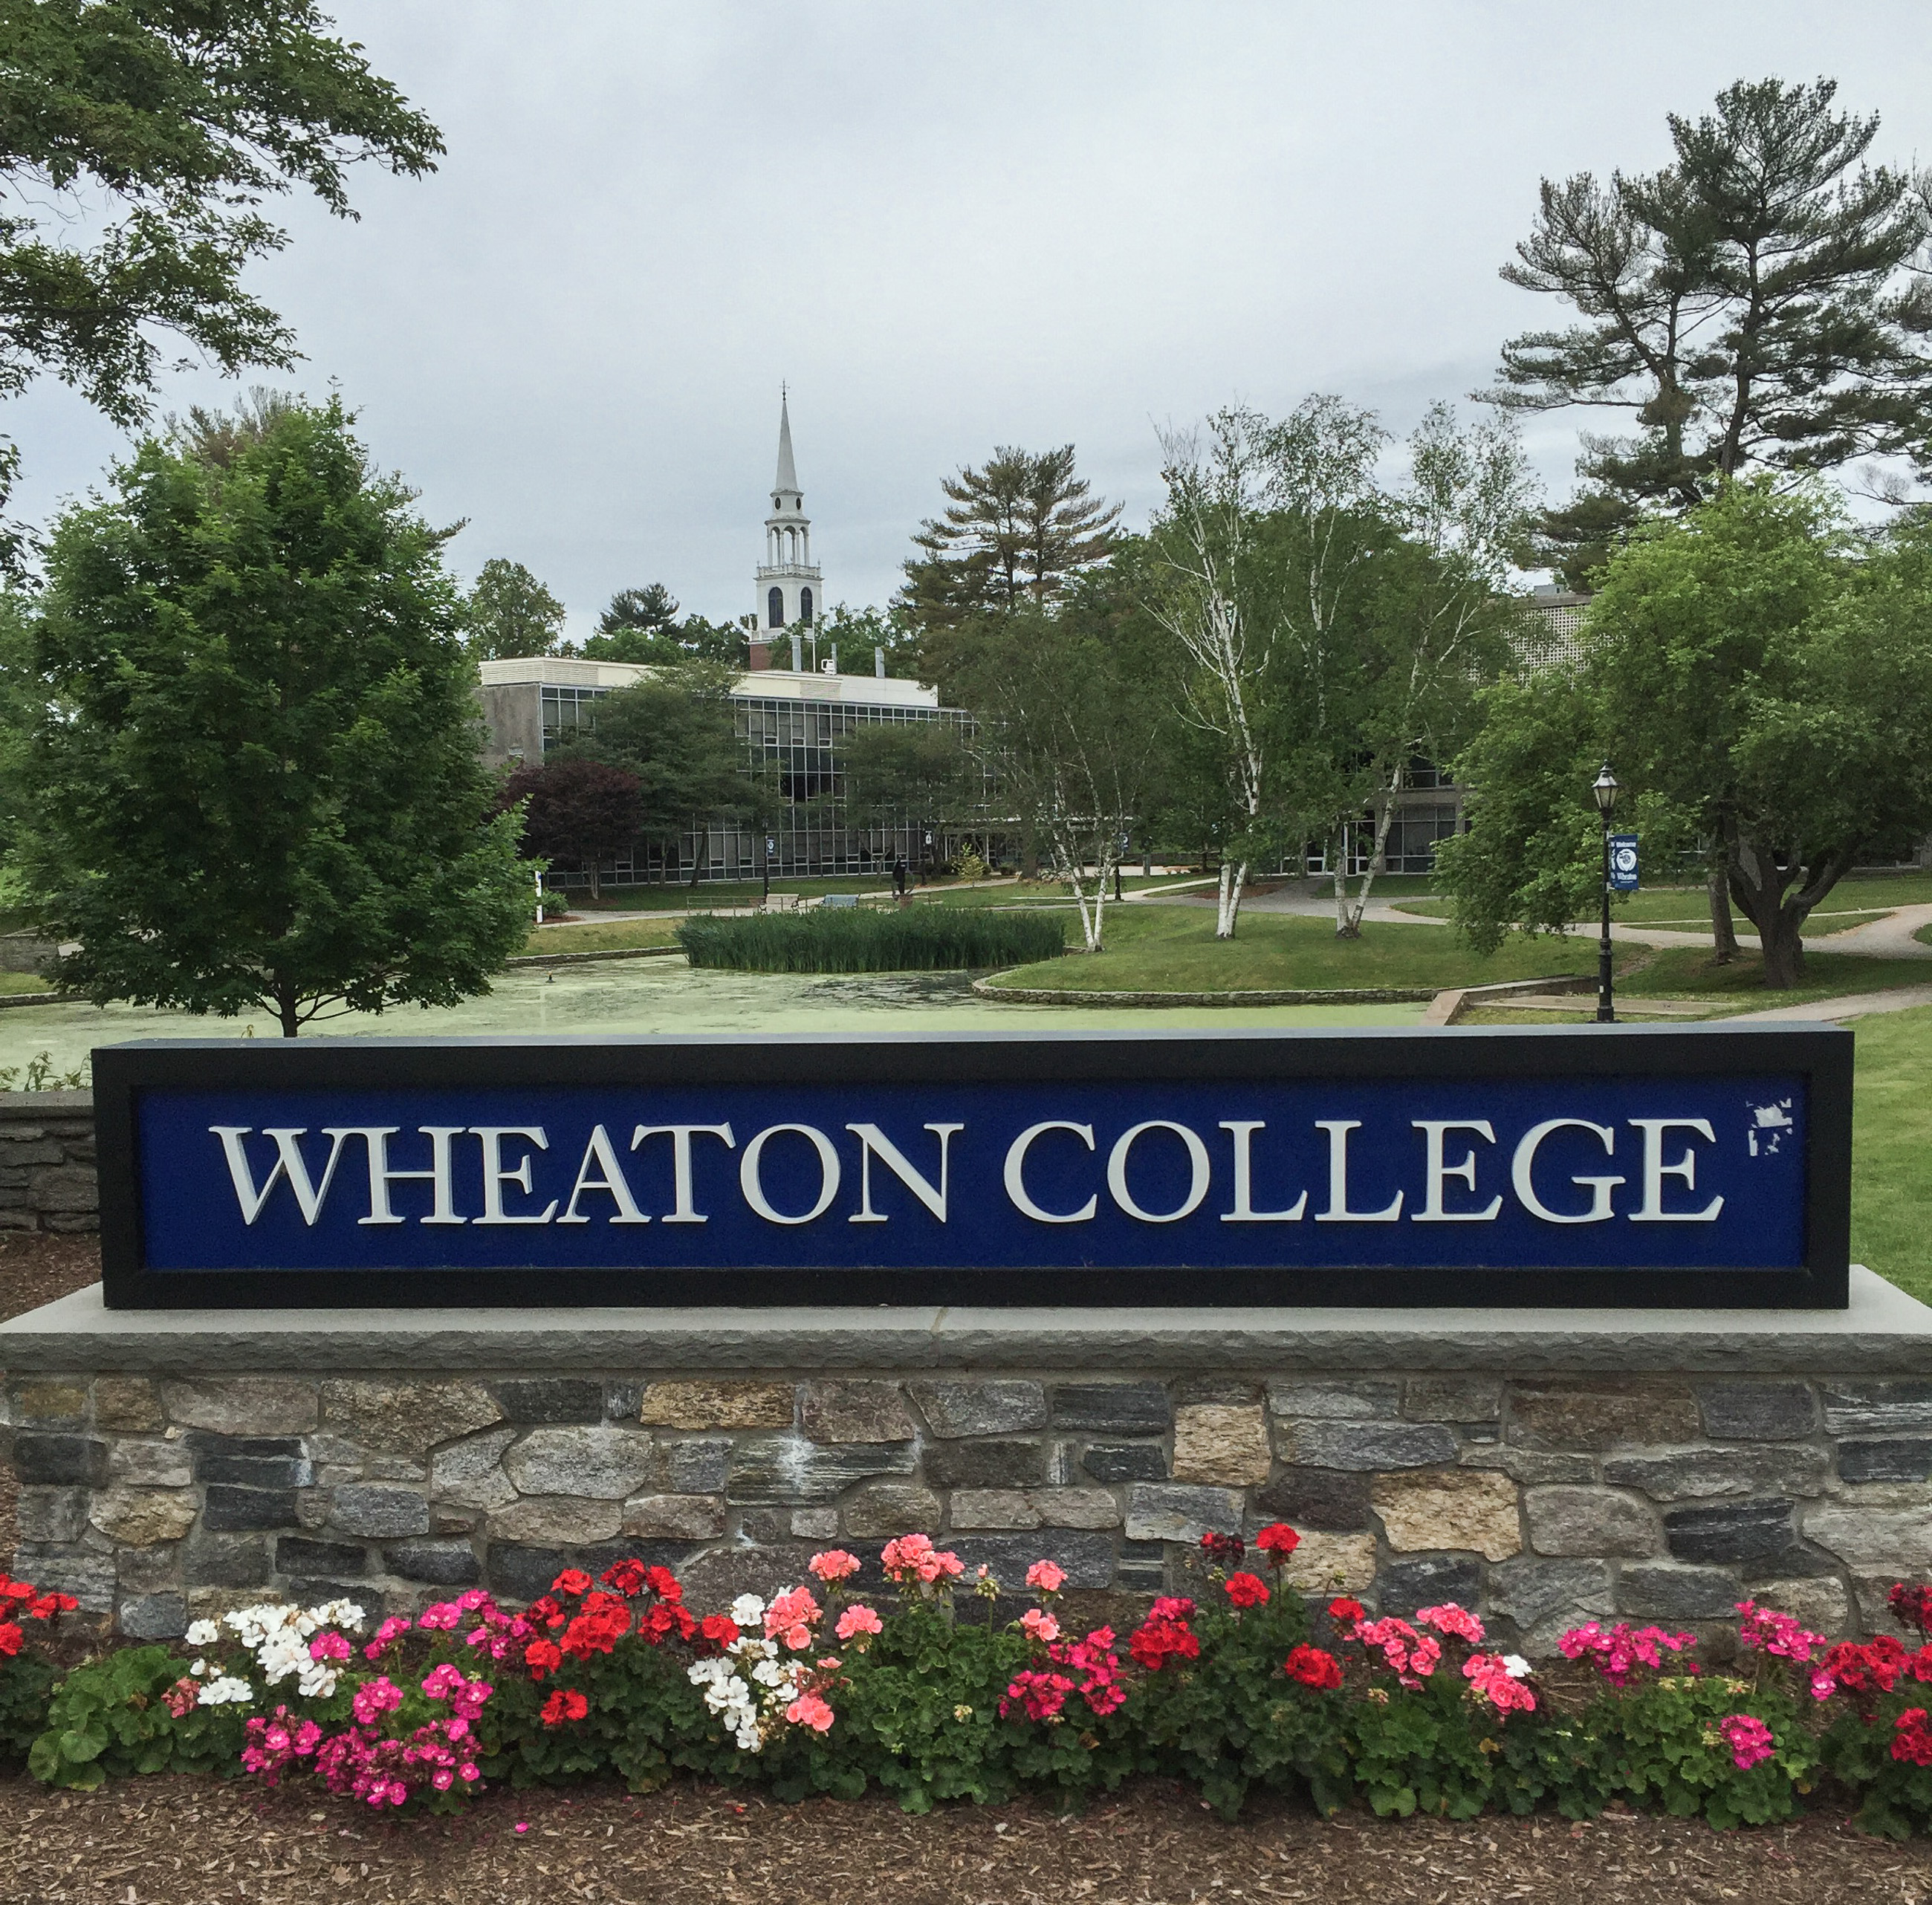 image of Wheaton College